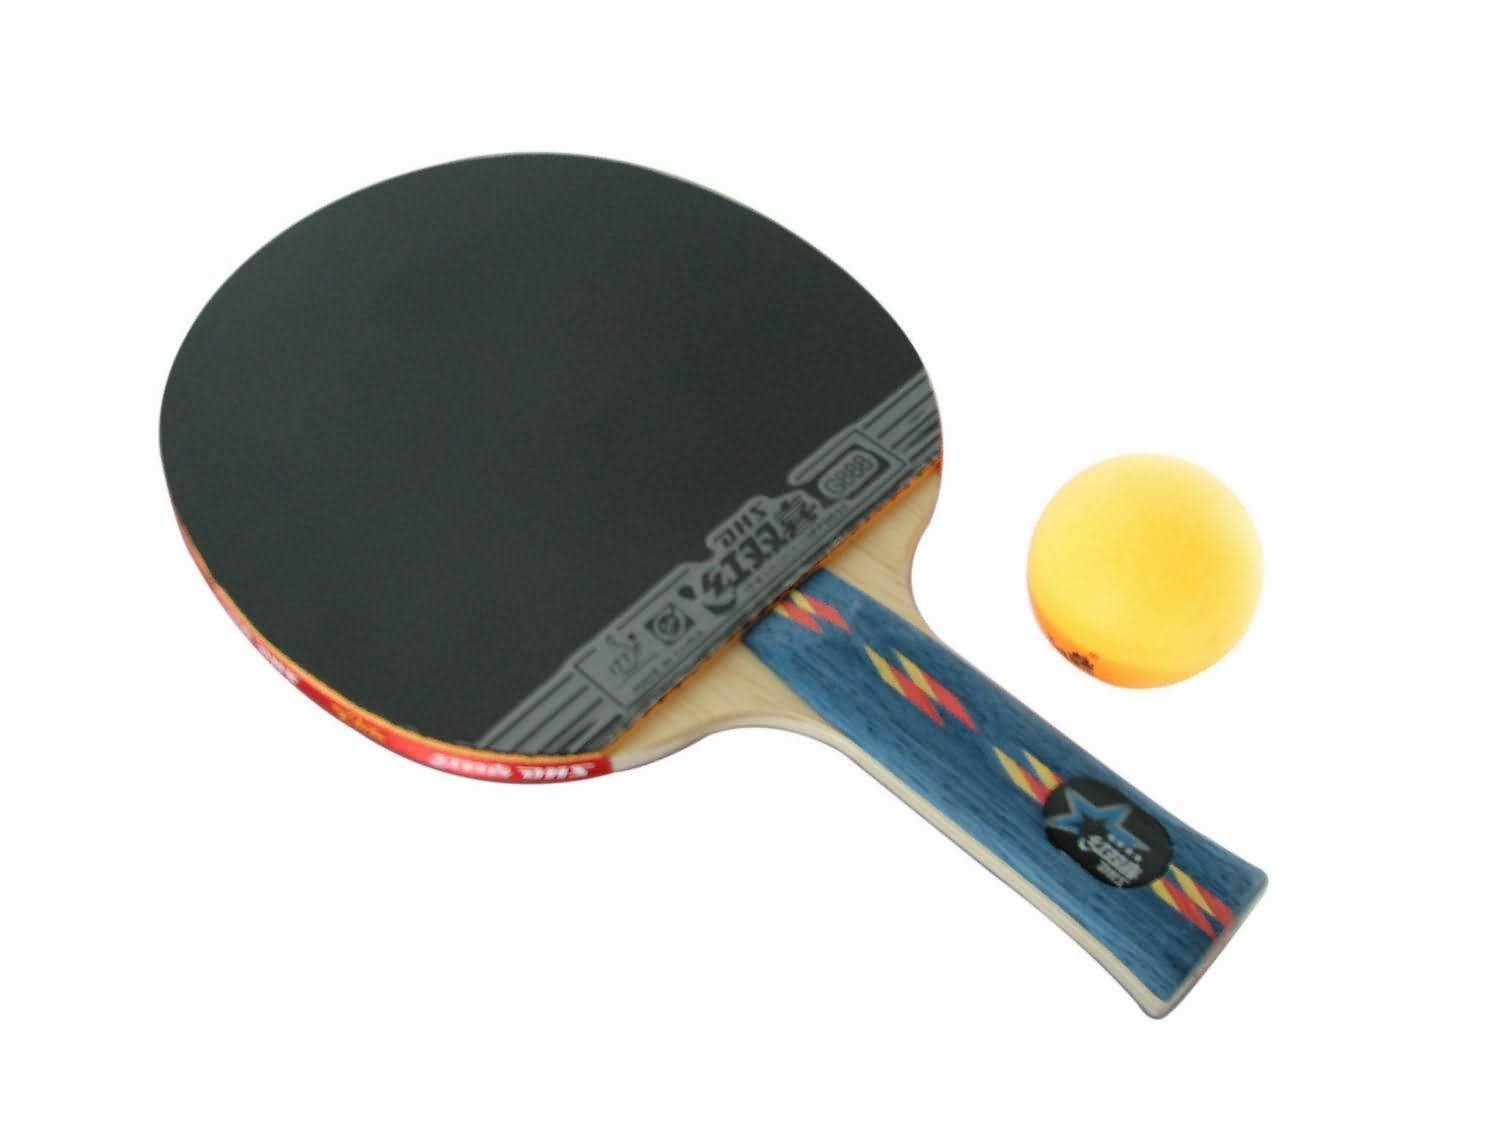 DHS tennis racket Genuine DHS four-star level shake-hands grip table tennis finished 4006 Penhold 4